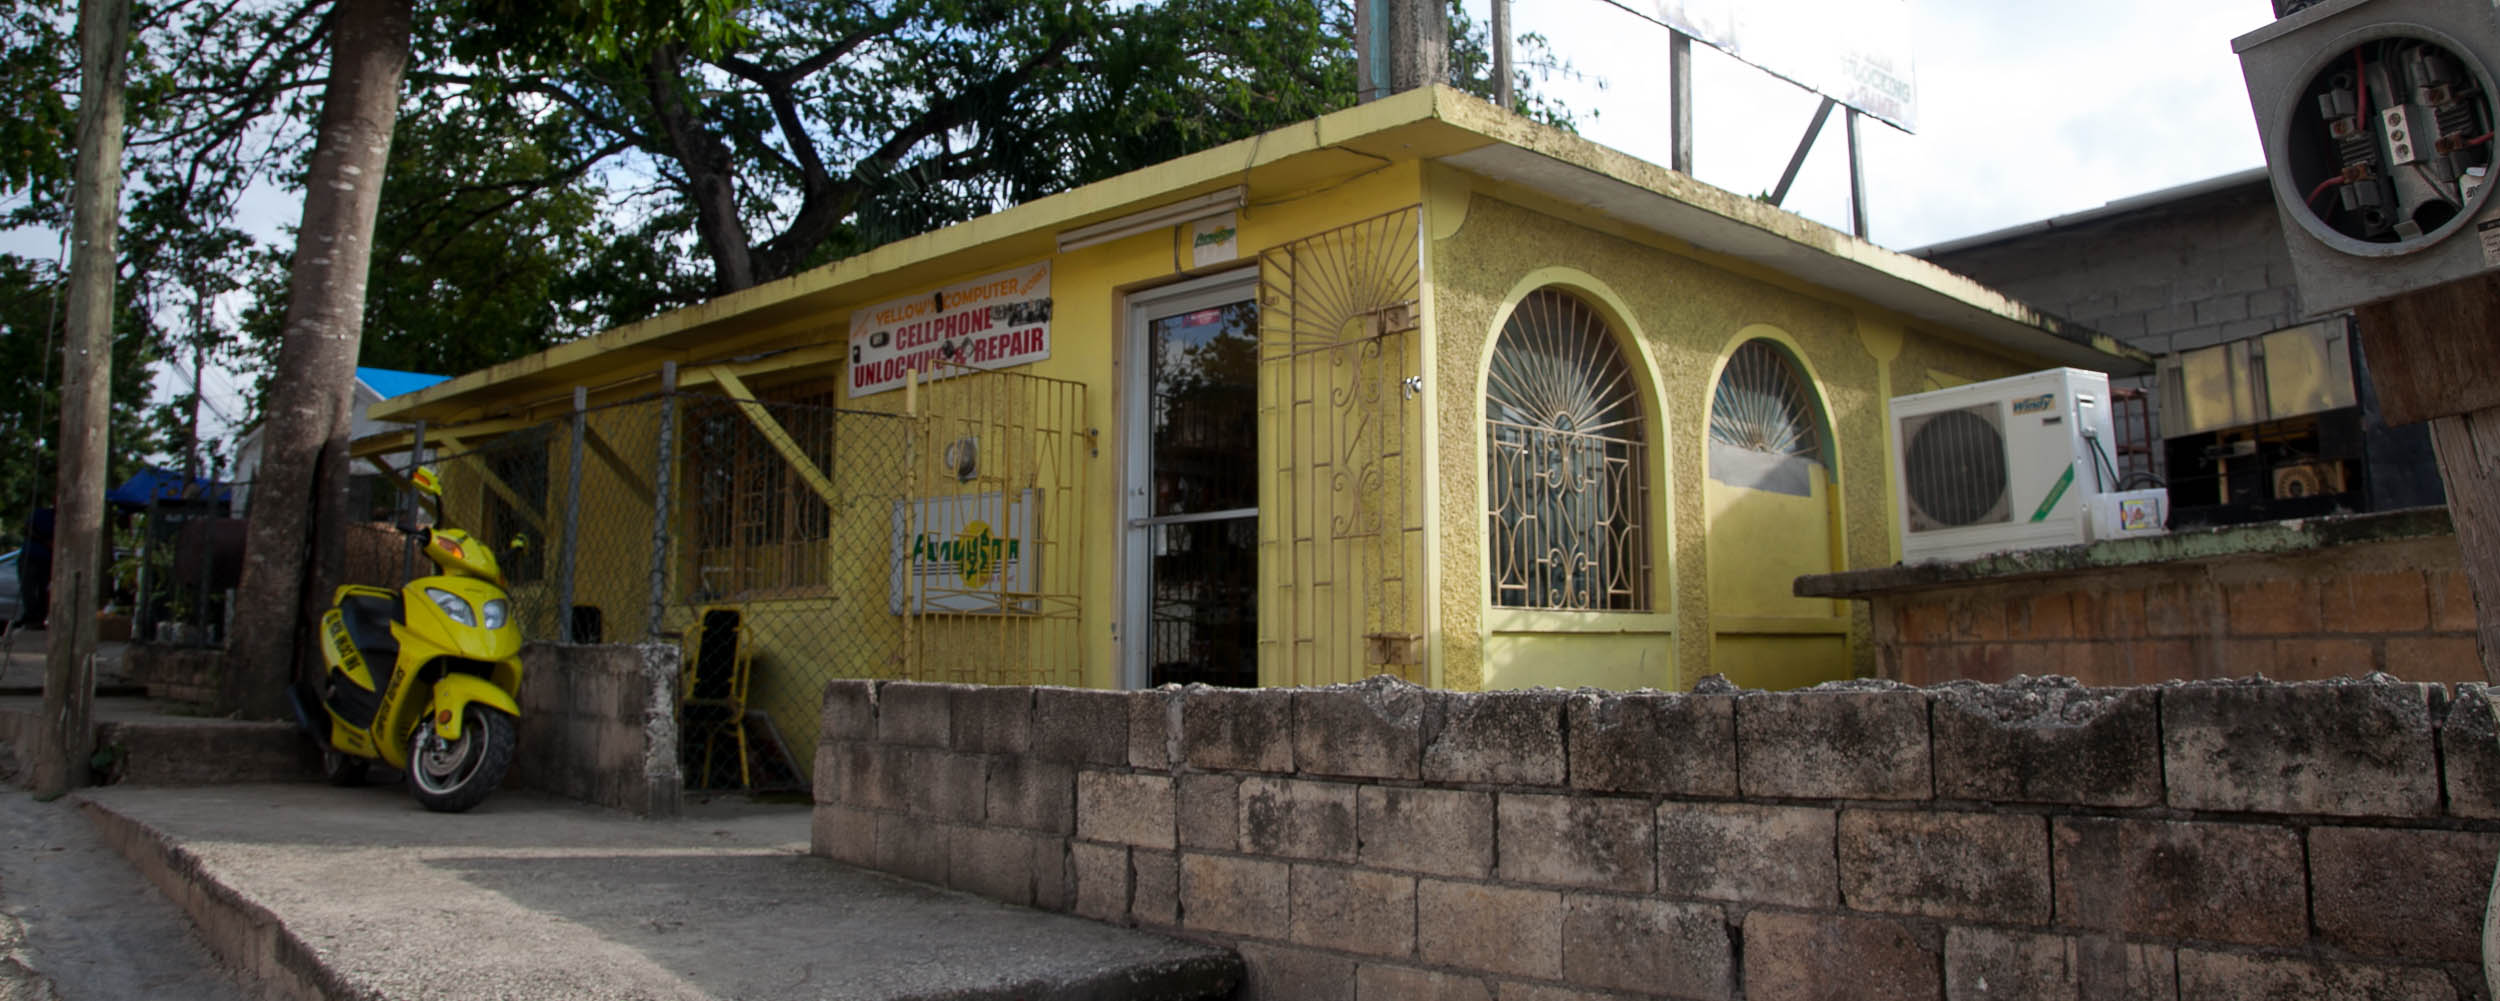 Yellow's Computer Works - Negril Jamaica